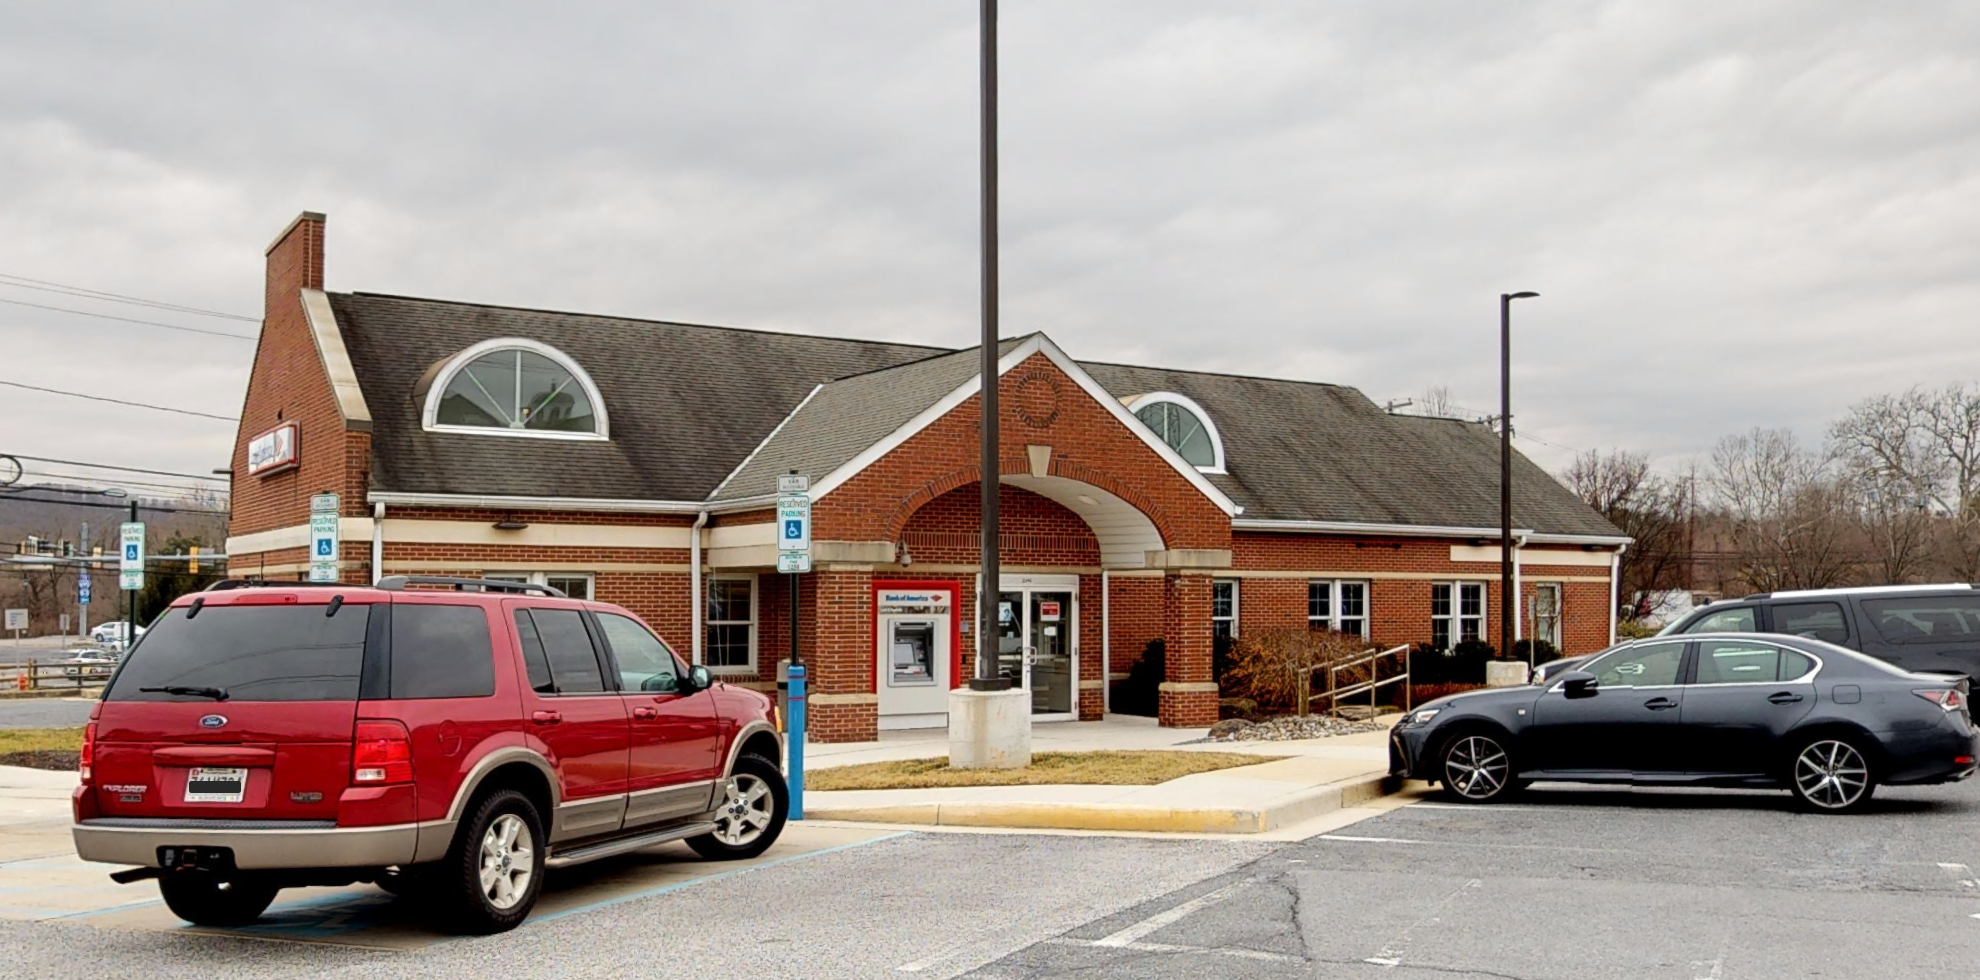 Bank of America financial center with drive-thru ATM | 2340 W Joppa Rd, Lutherville, MD 21093